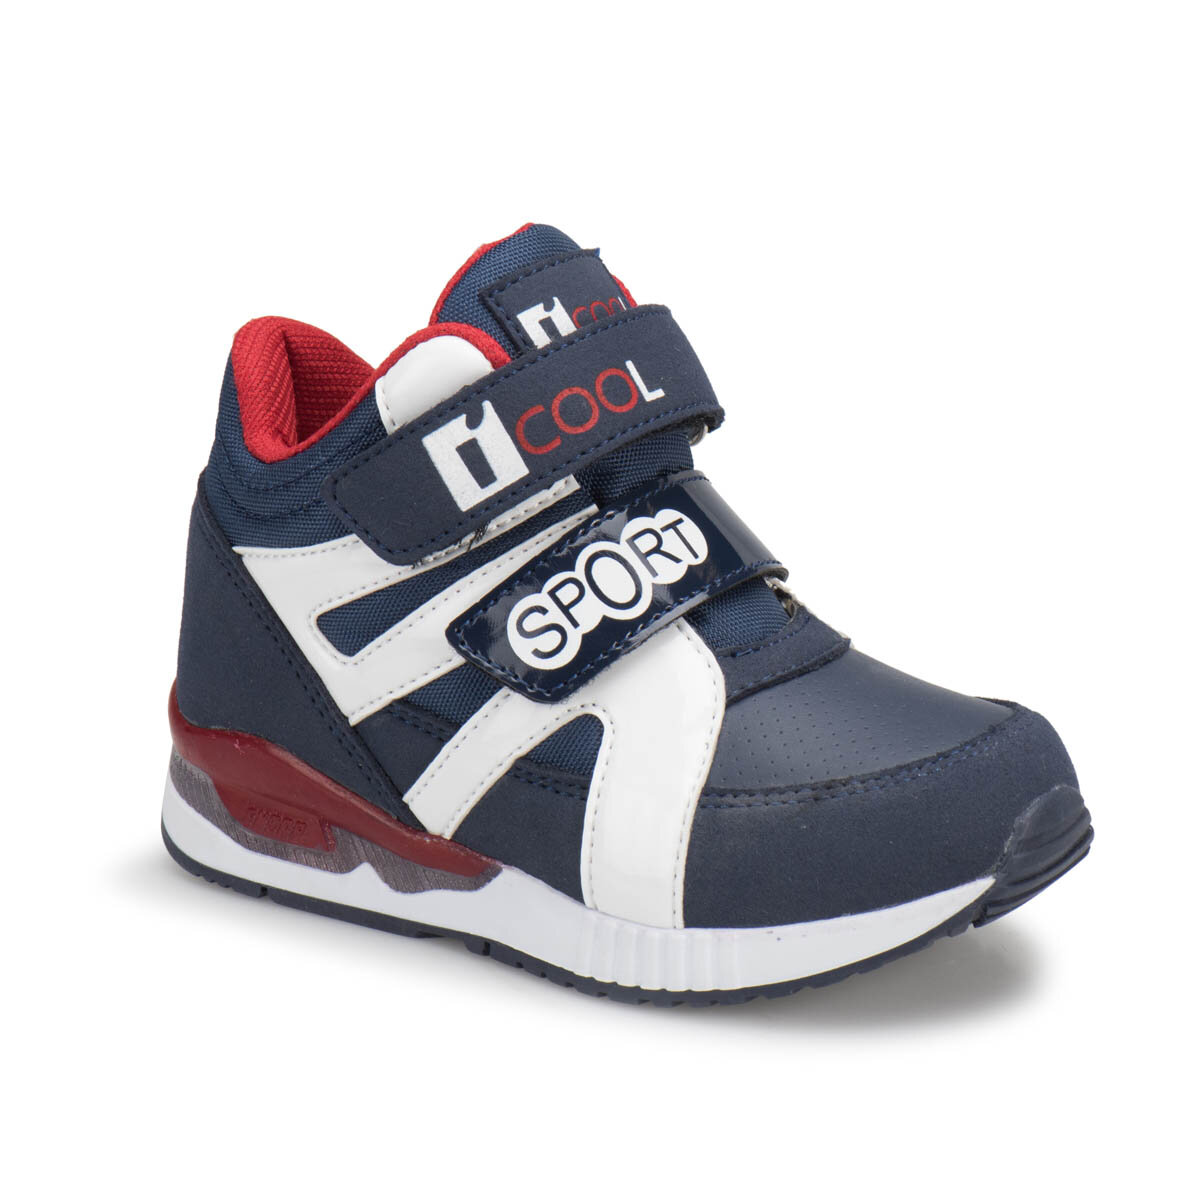 FLO TOD Navy Blue Male Child Sneaker Shoes I-Cool